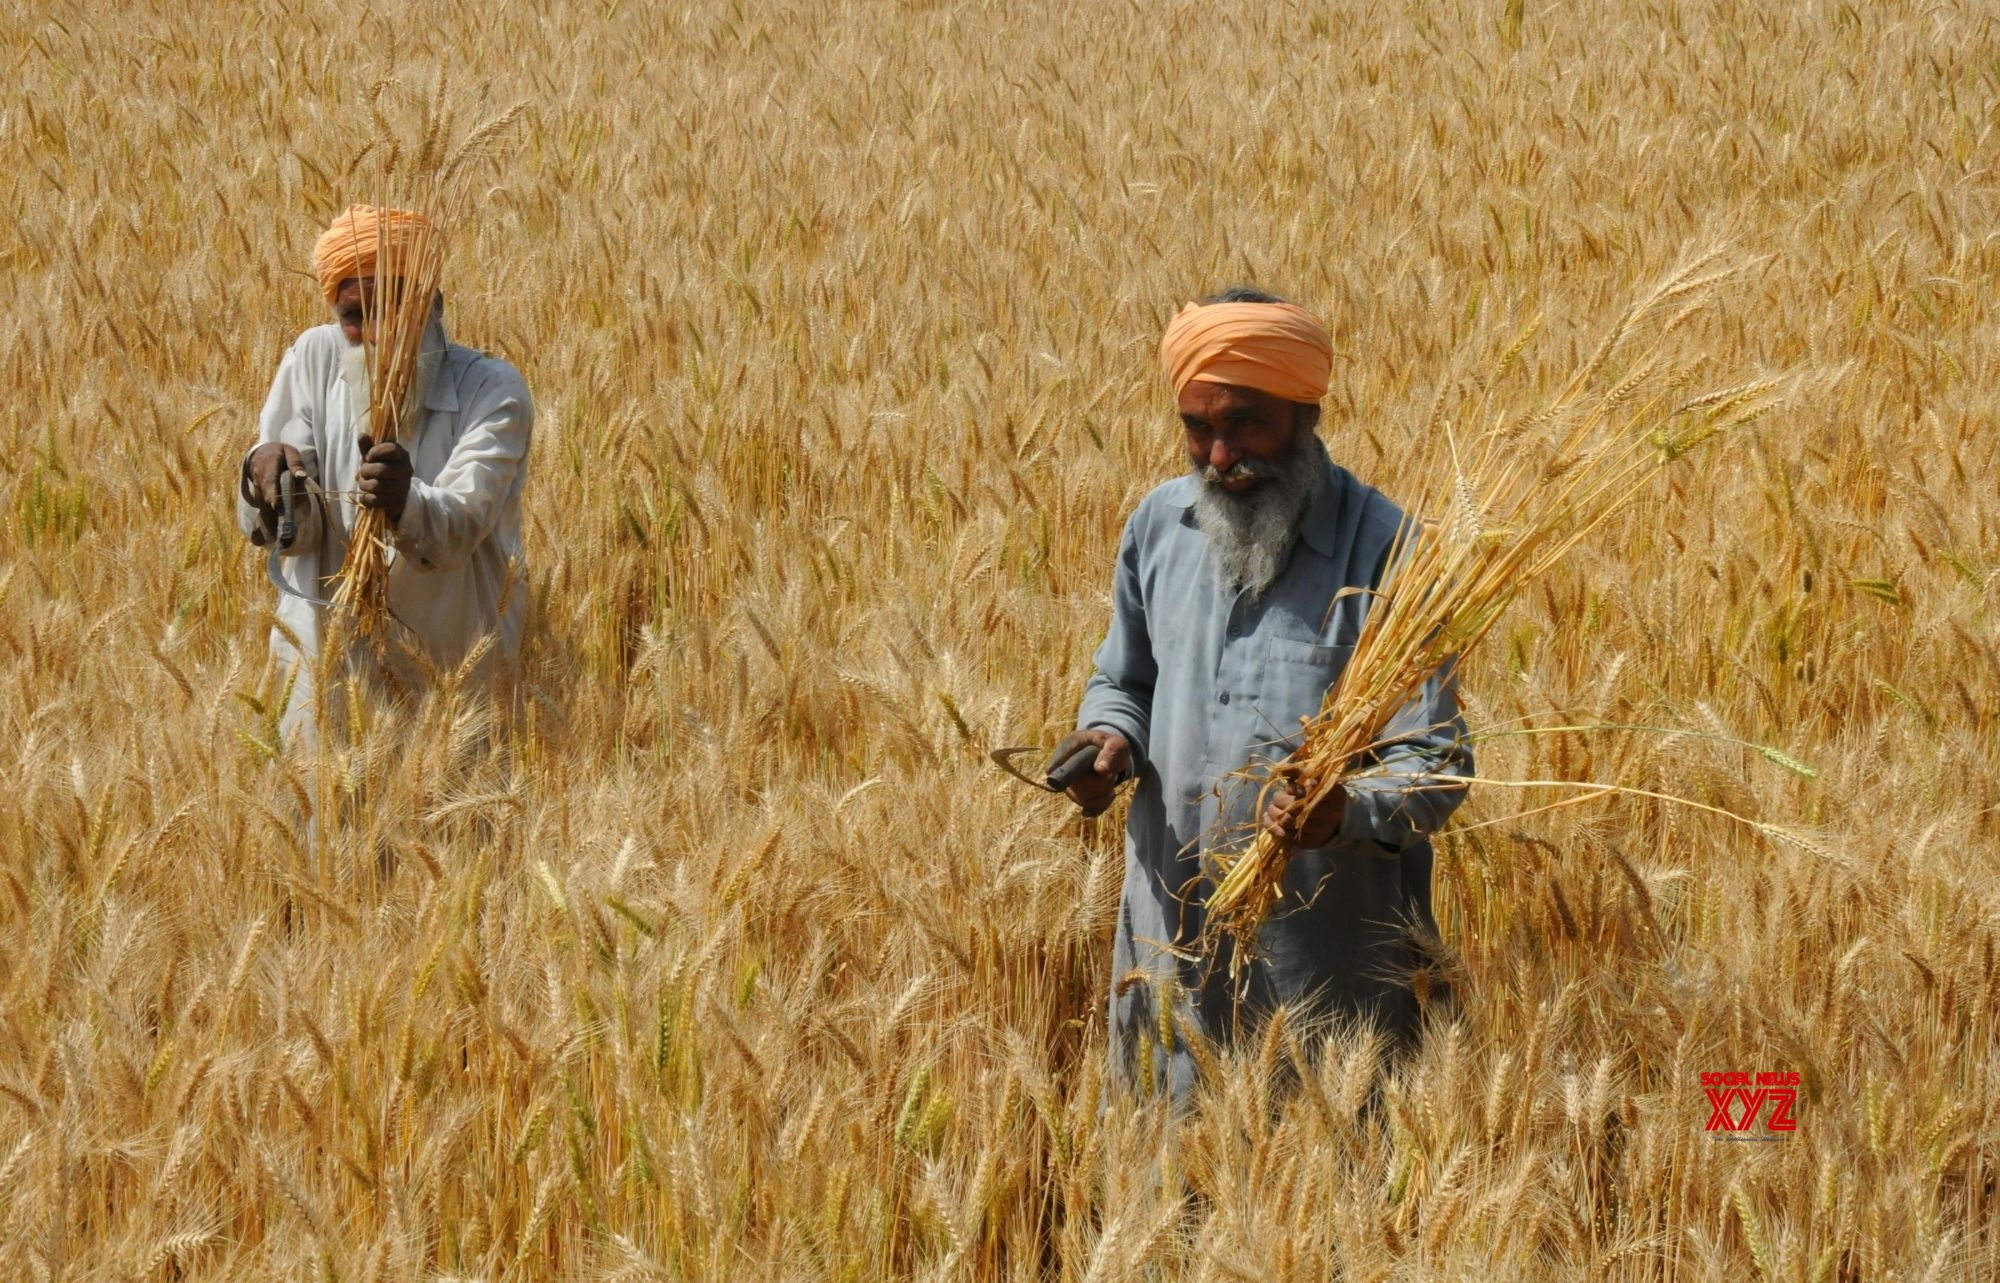 Foodgrain production to be record 279.51 million tonnes: Government